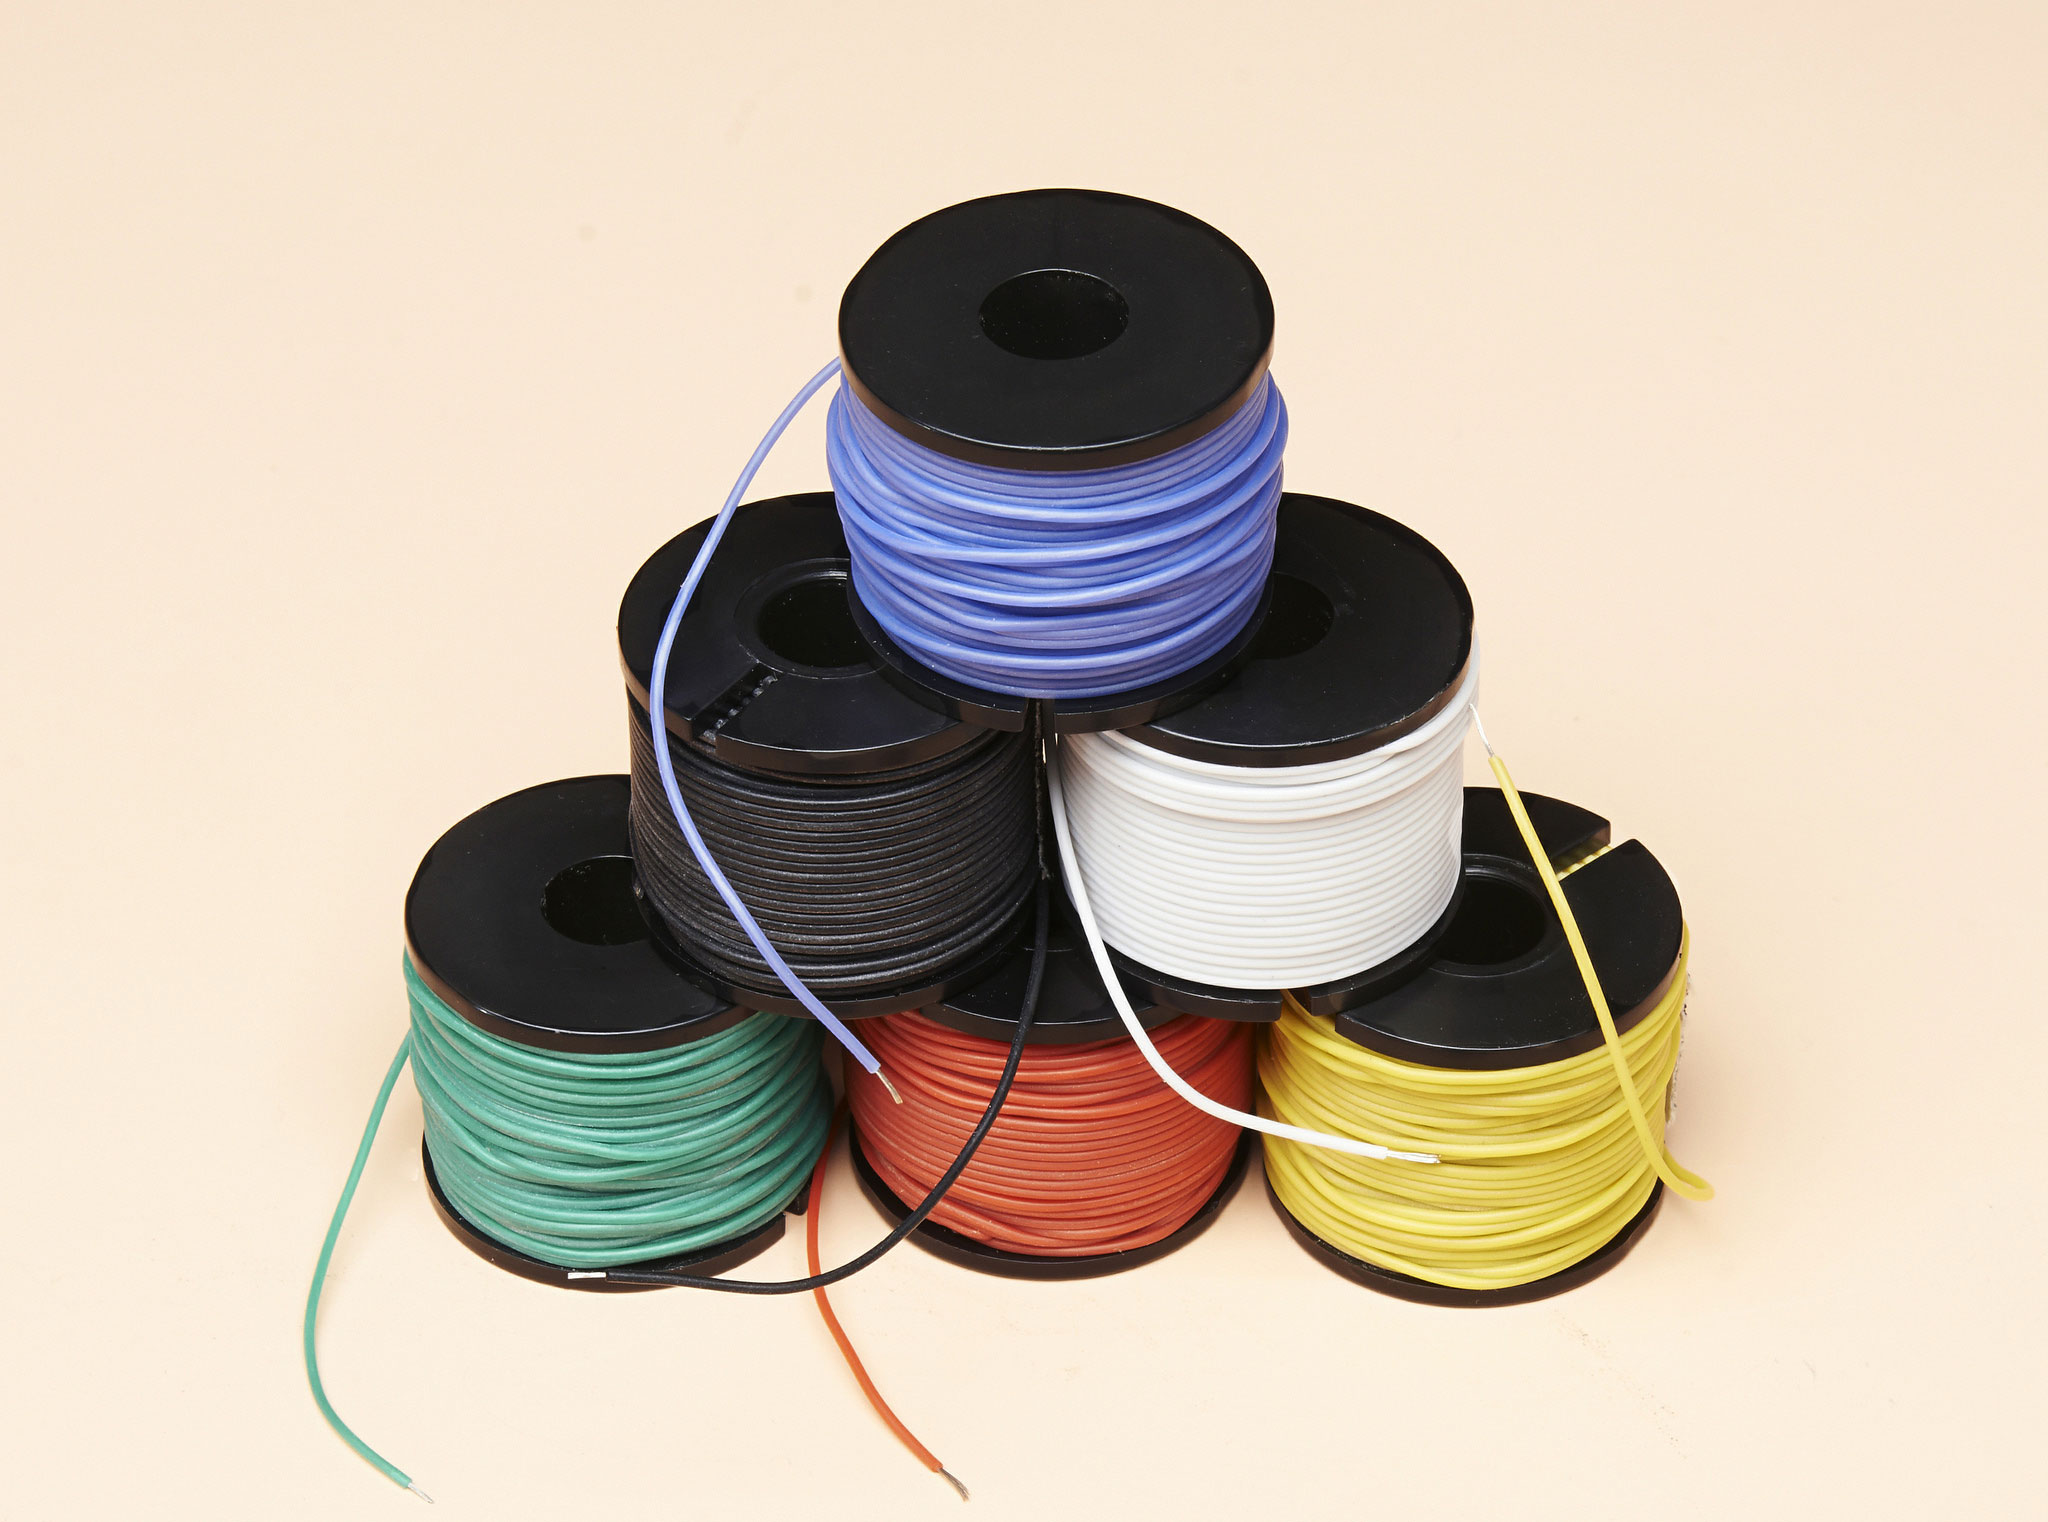 3d_printing_products-spool.jpg